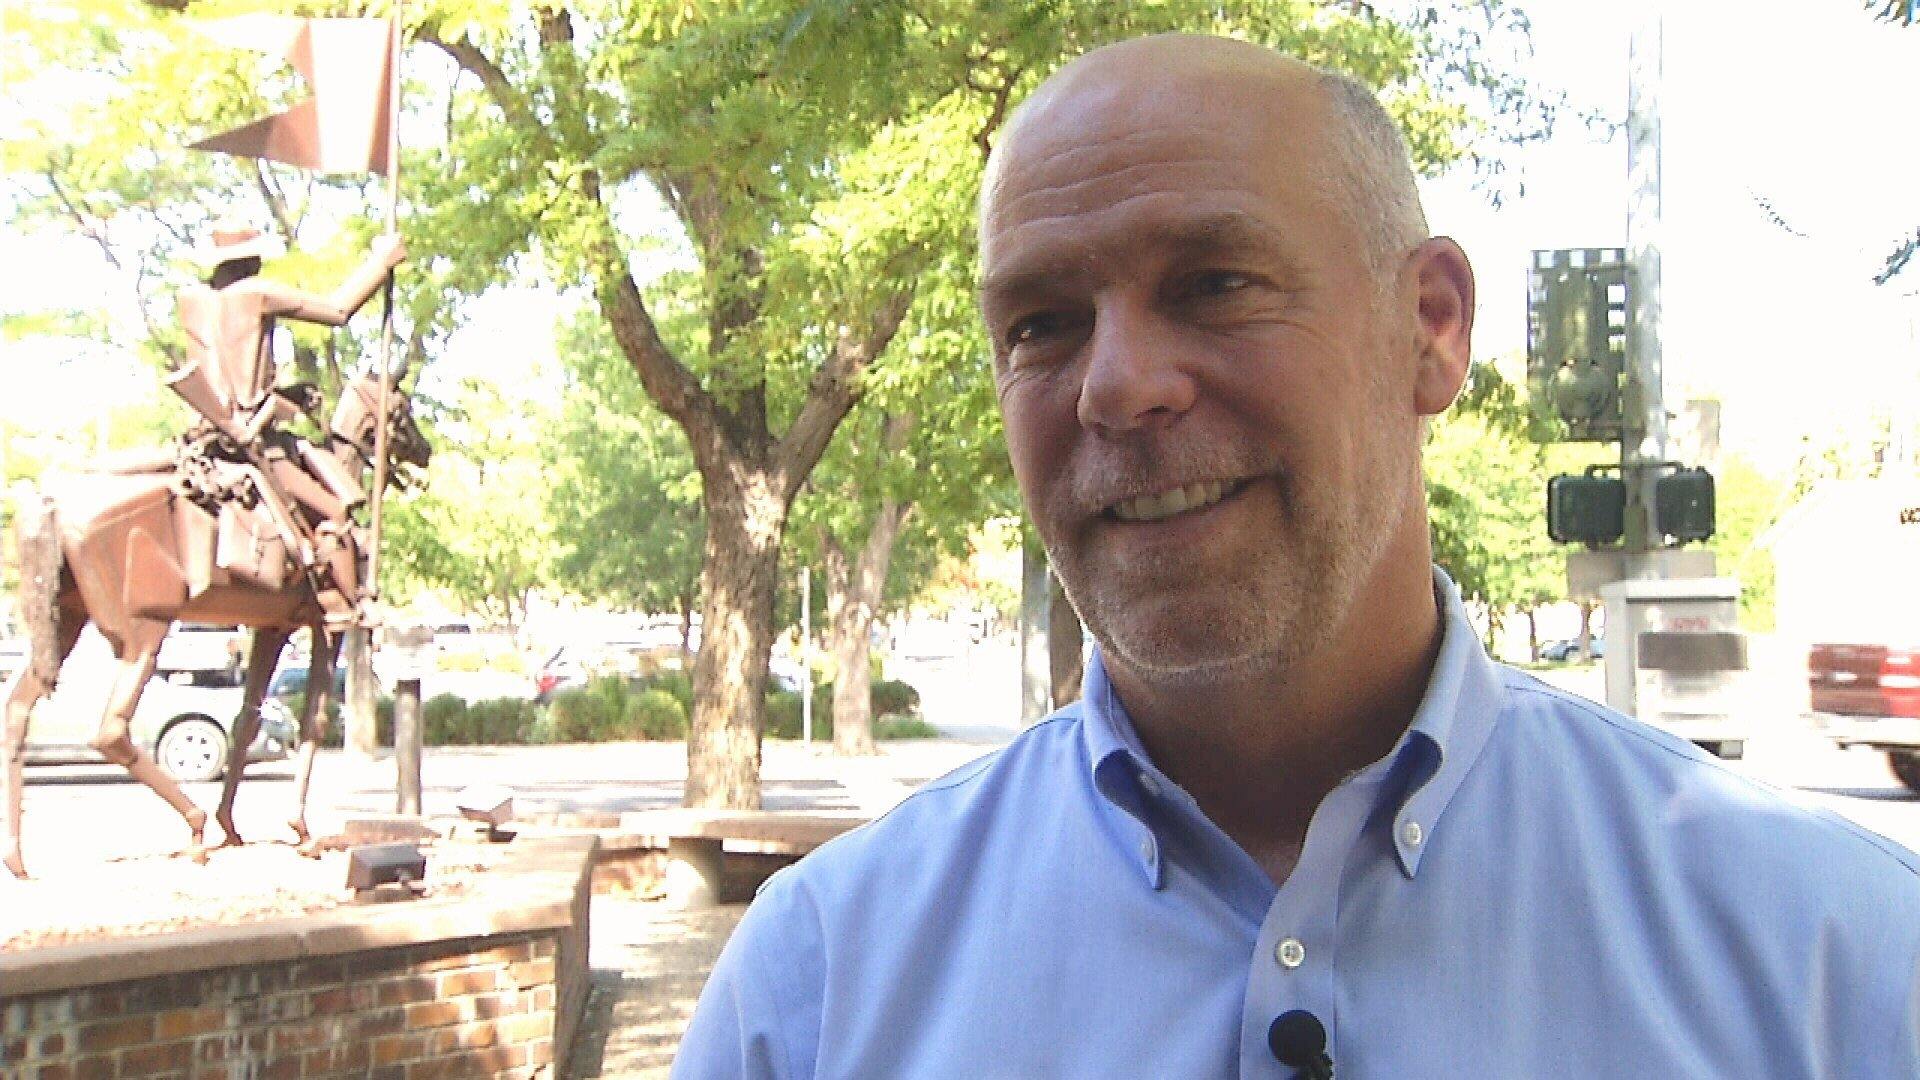 Republican Montana congressional candidate Greg Gianforte. (MTN News photo)